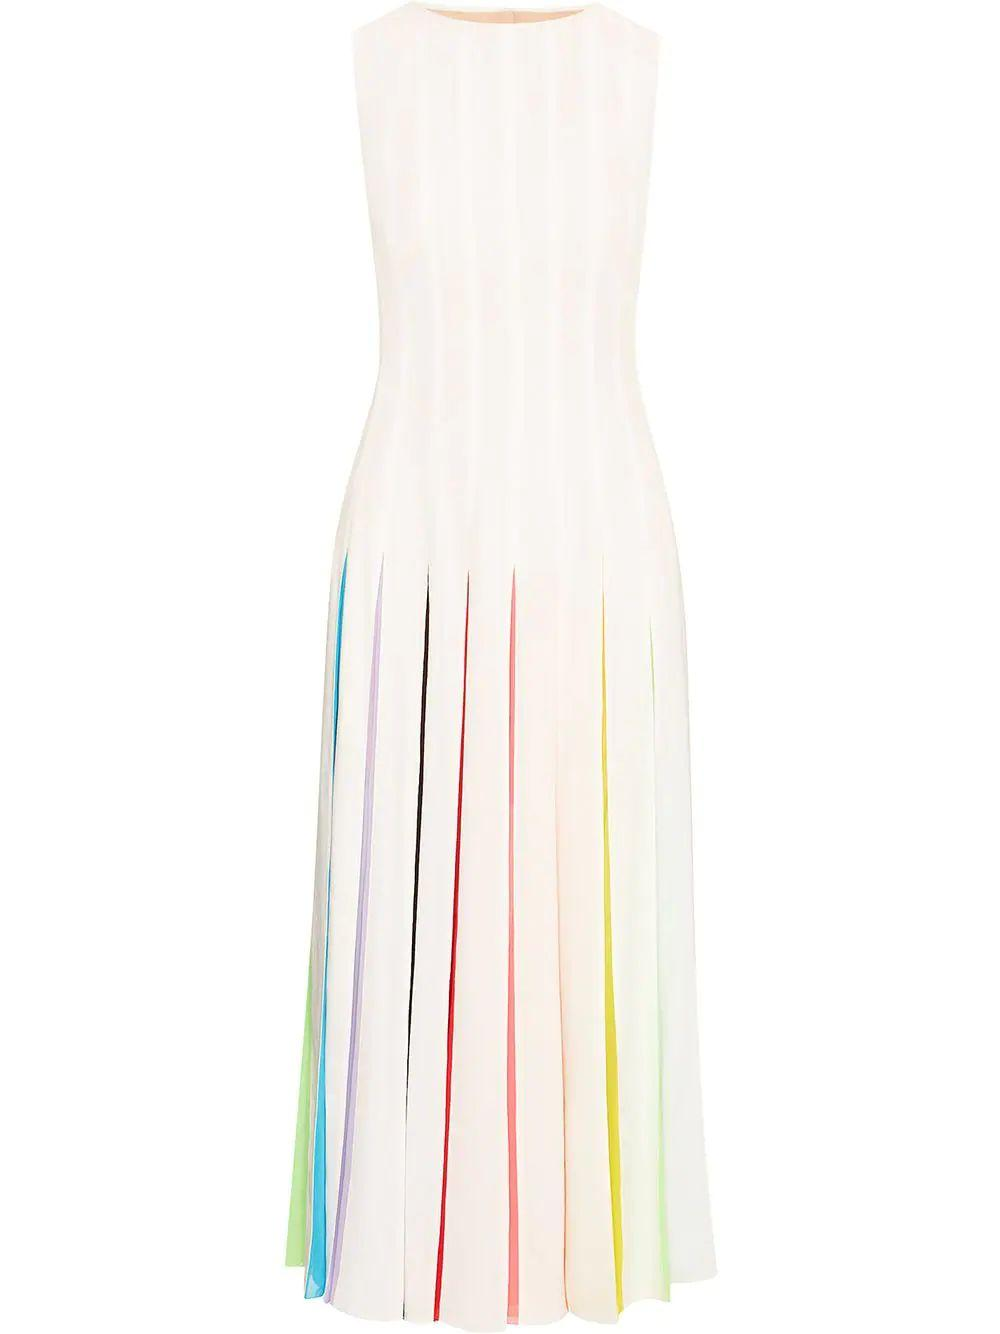 Multi Colored Pleated Dress